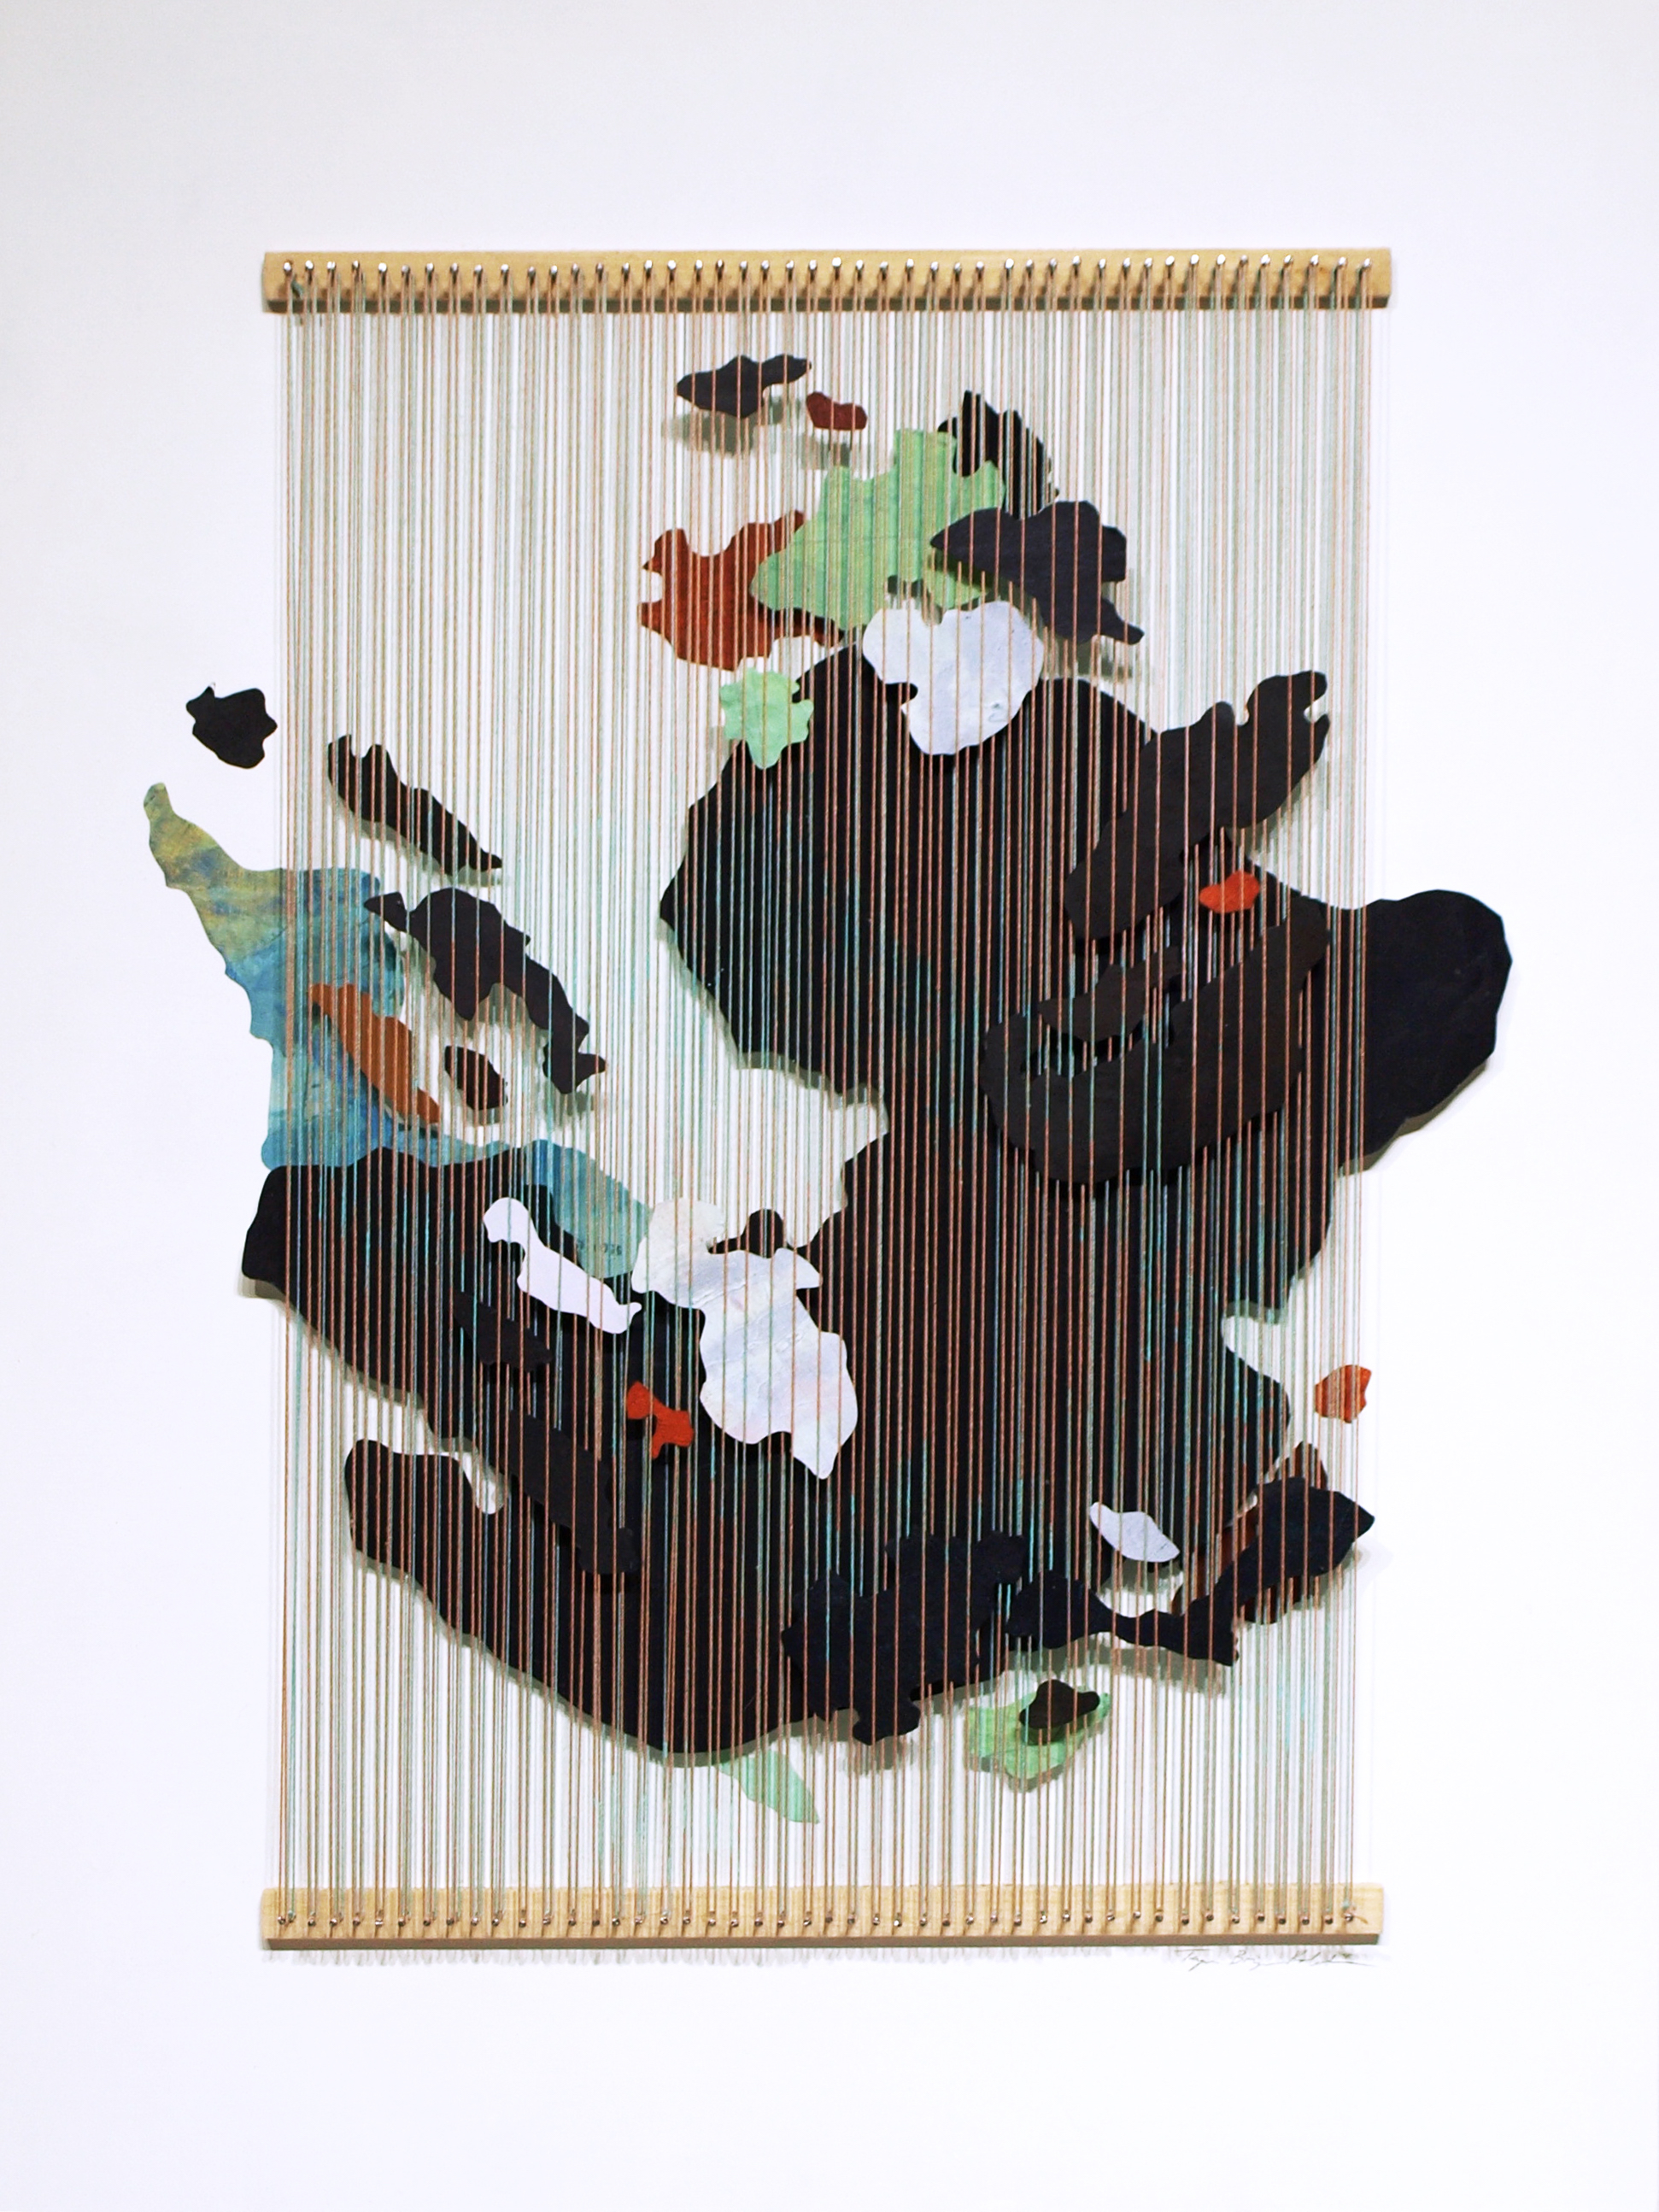 Tegan Brozyna Roberts,  Third , 2018, Painted paper, thread, nails and wood, 24 1/2 x 18 3/4 inches